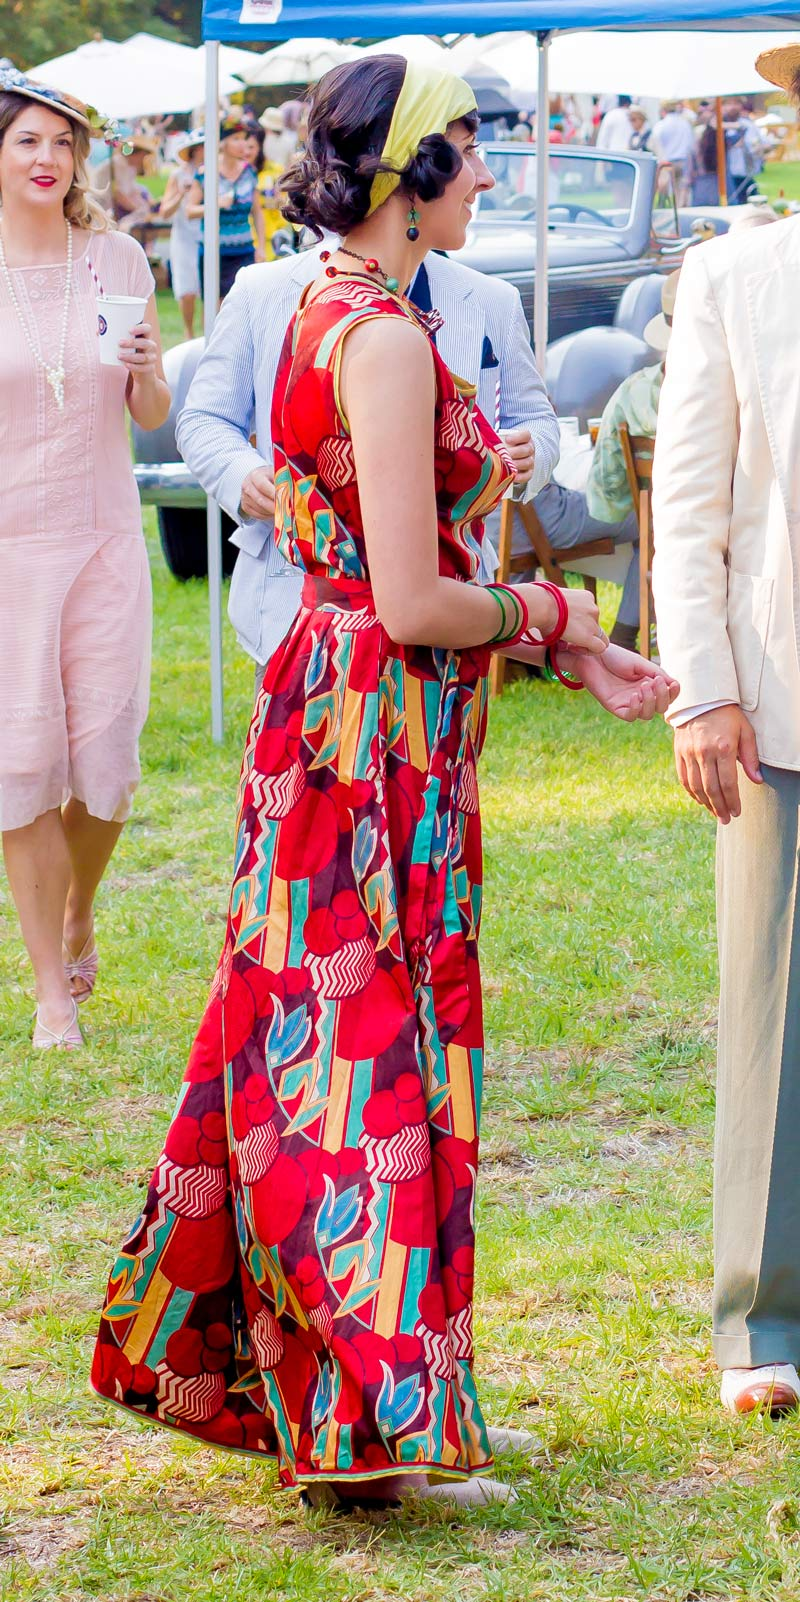 This. This is why  beach pajamas  are the greatest. Just look at that art deco print and the rich colors of the scarf-weight silk twill. Even the little striped edging at the hem. Simply stunning.